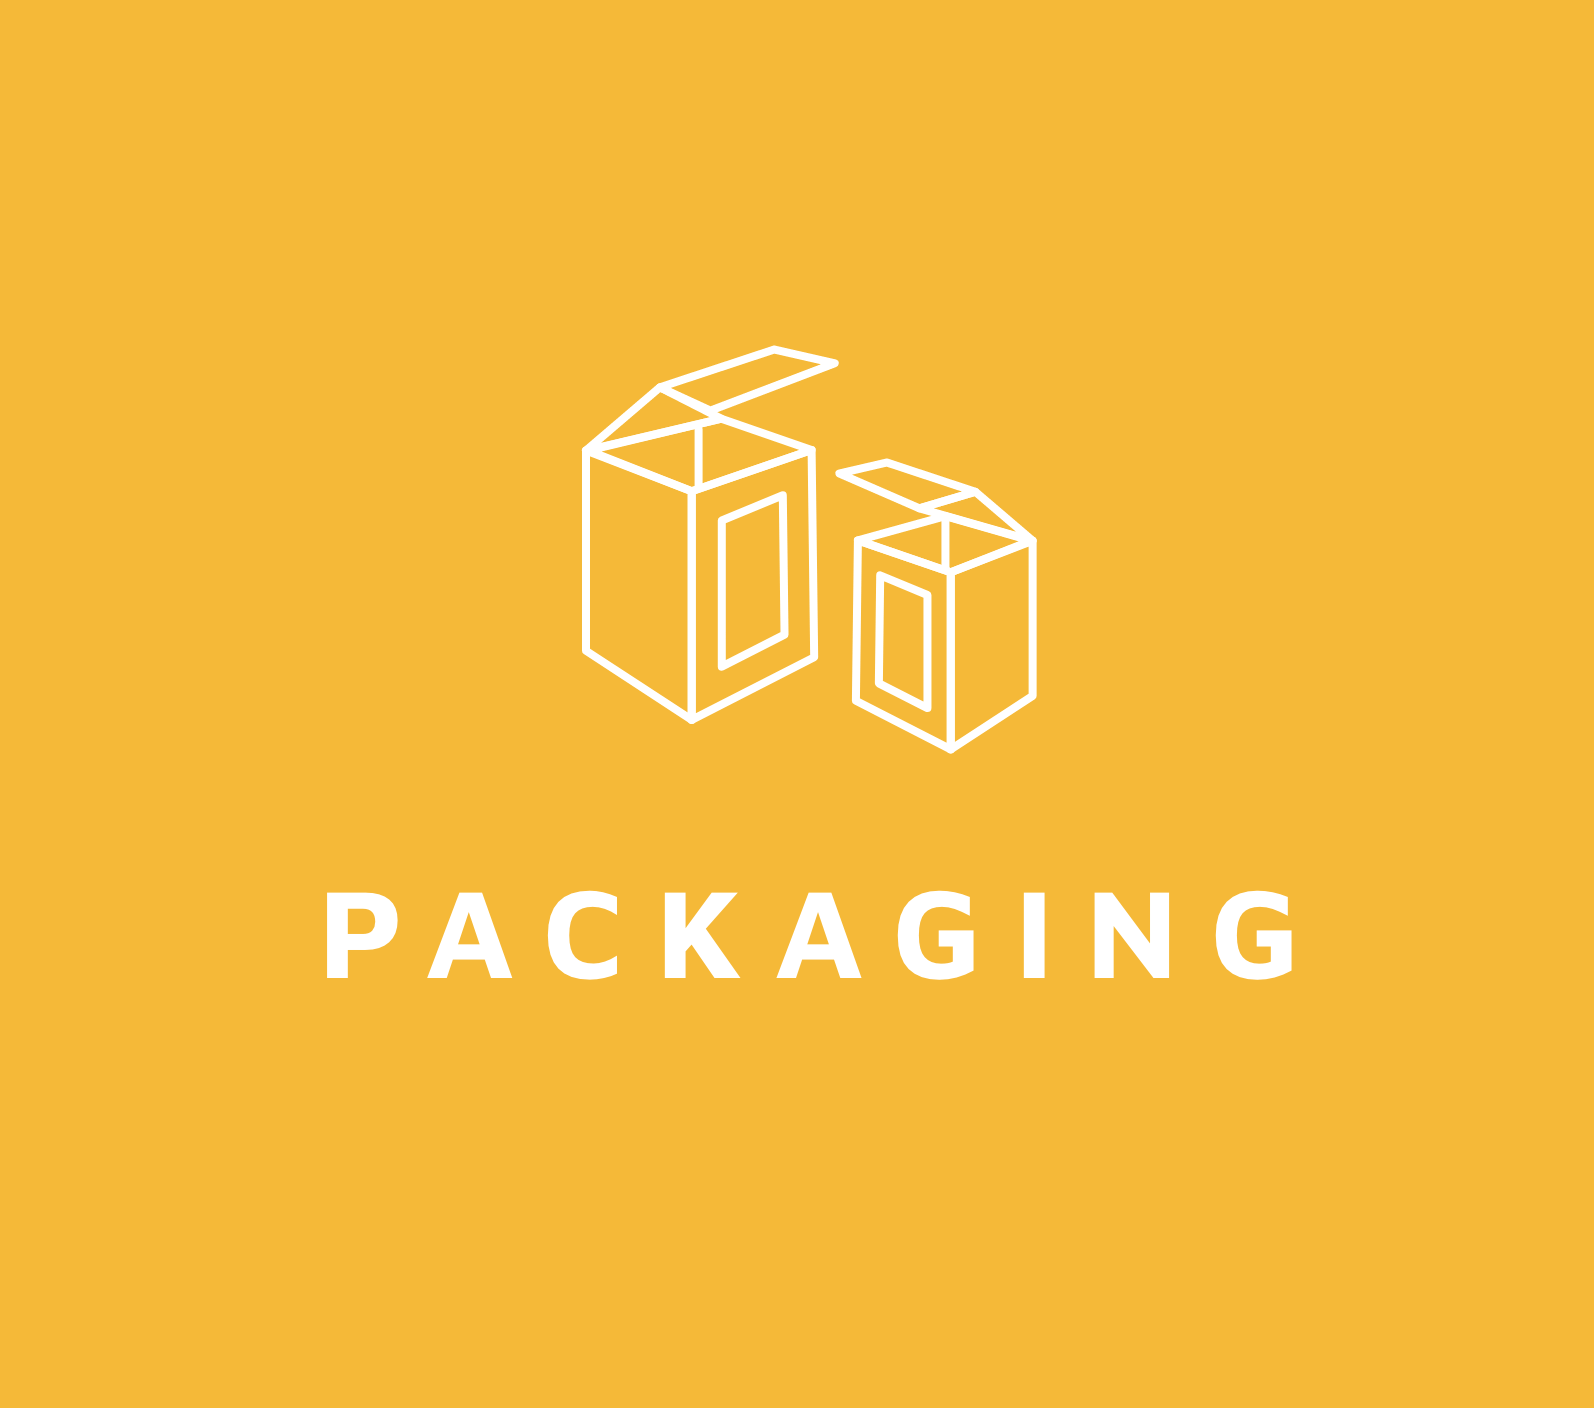 Packaging_cb@2x